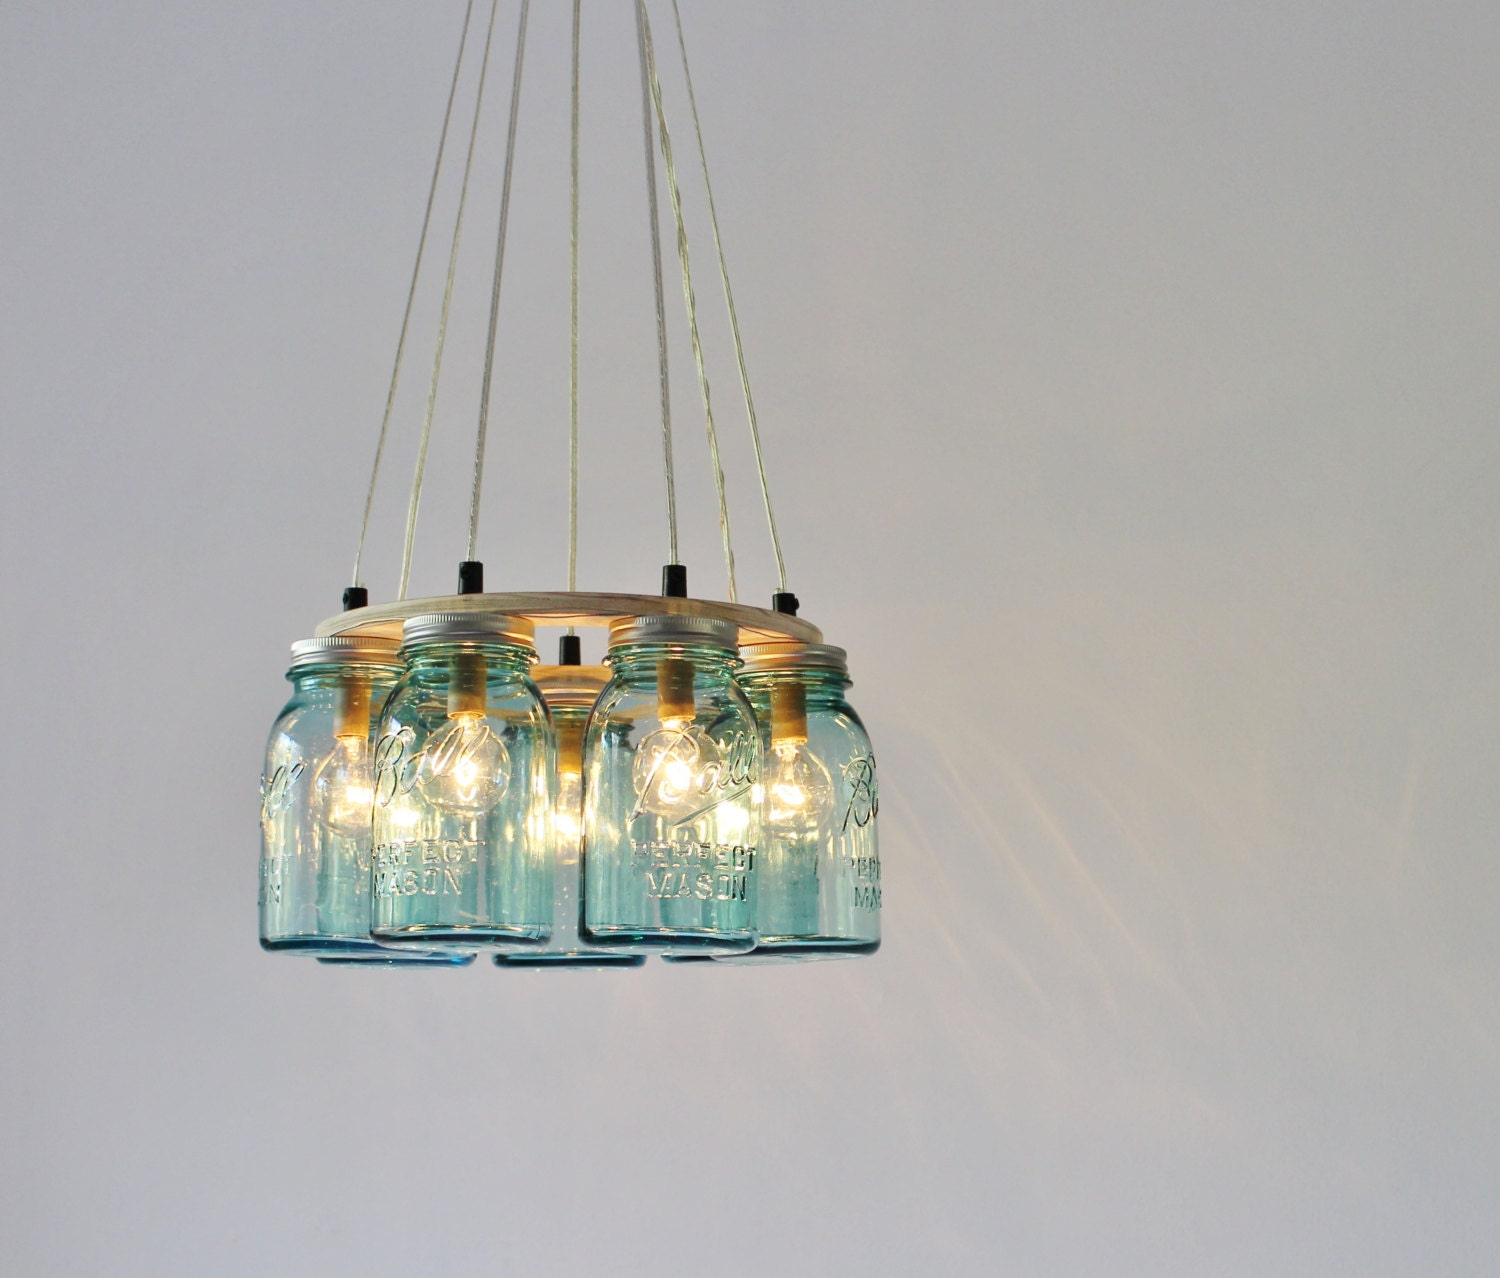 mason jar chandelier ring lighting fixture 7 antique blue. Black Bedroom Furniture Sets. Home Design Ideas